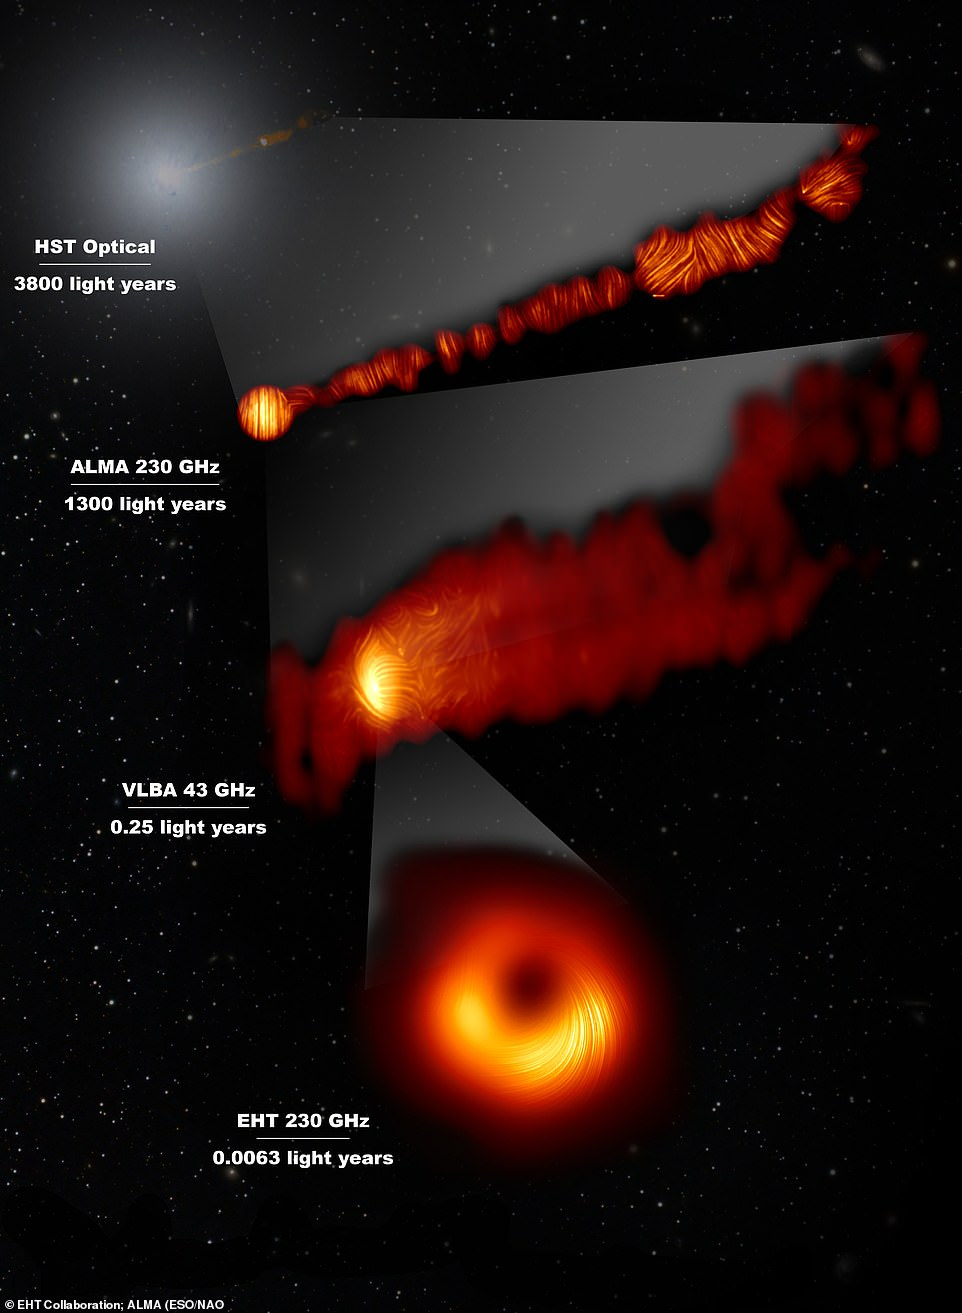 This composite image shows three views of the central region of the Messier 87 (M87) galaxy in polarised light and one view, in the visible wavelength, taken with the Hubble Space Telescope